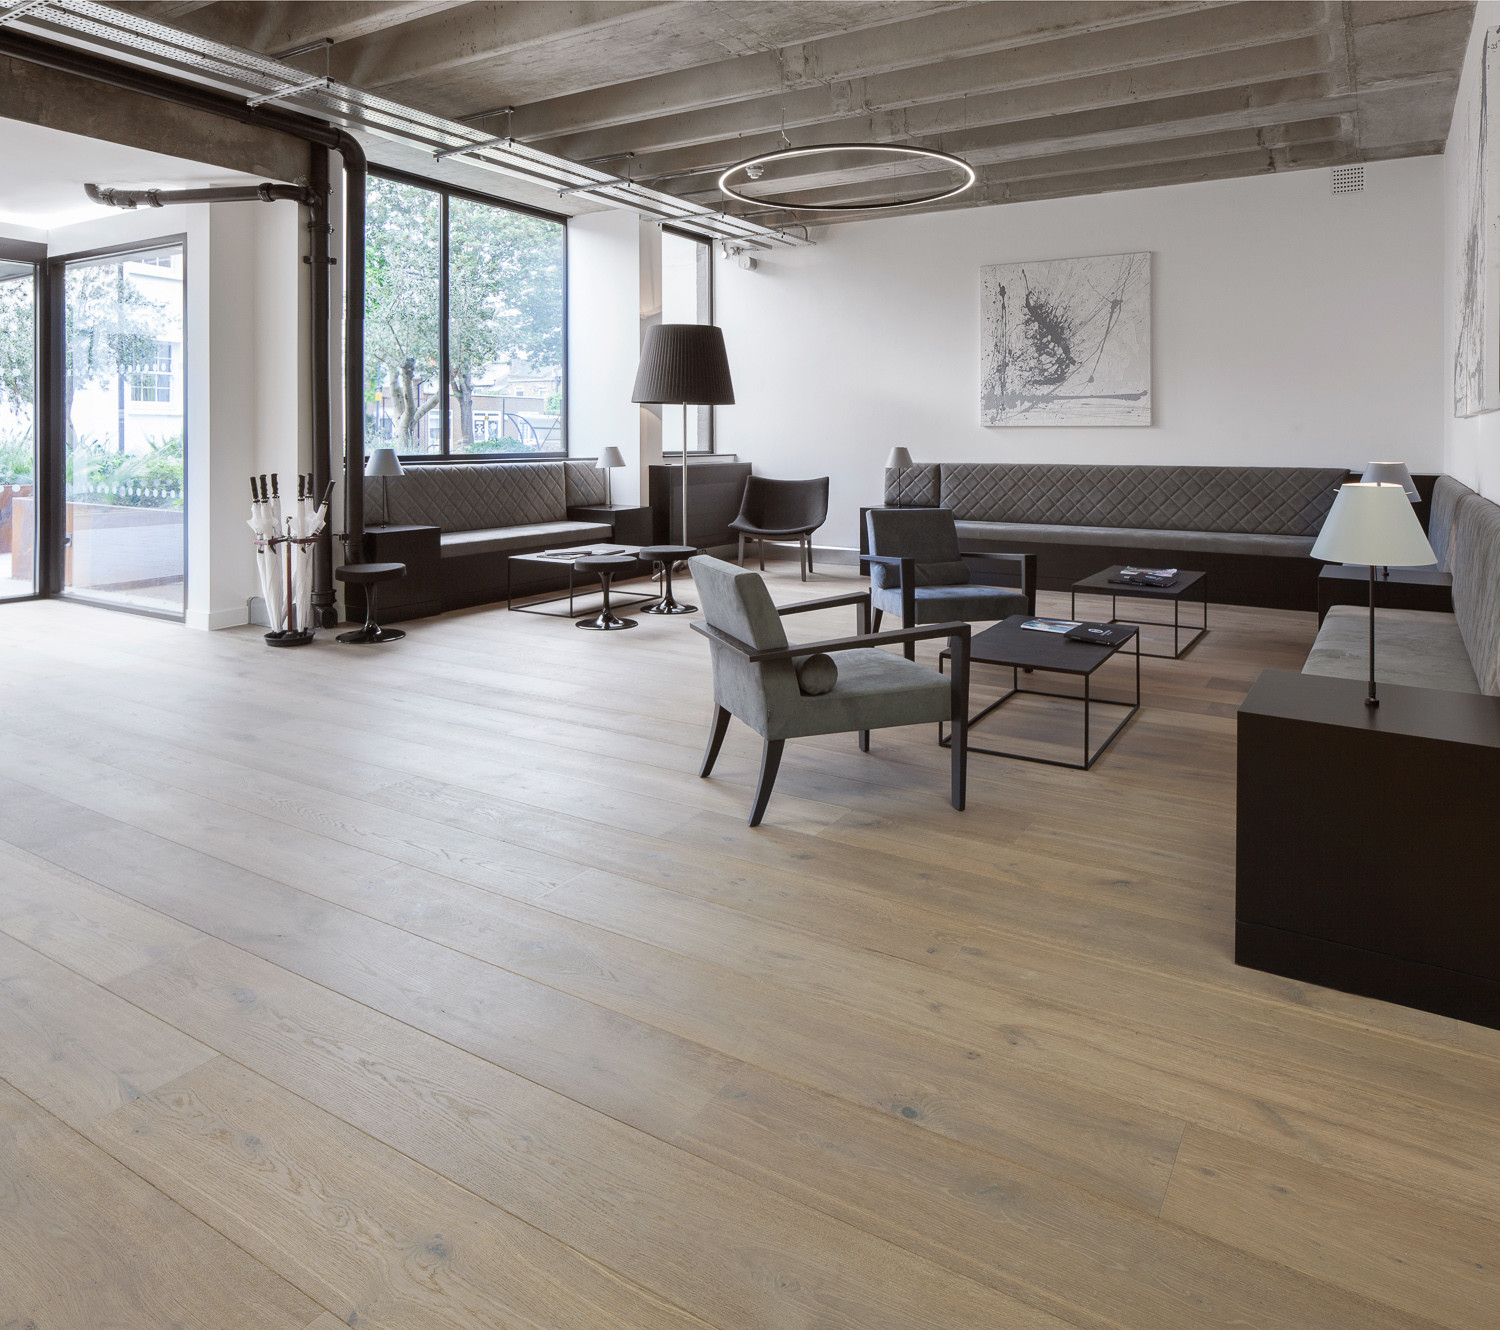 hardwood flooring cost per square metre of the new reclaimed flooring company intended for our harvested oak clockwork offices london